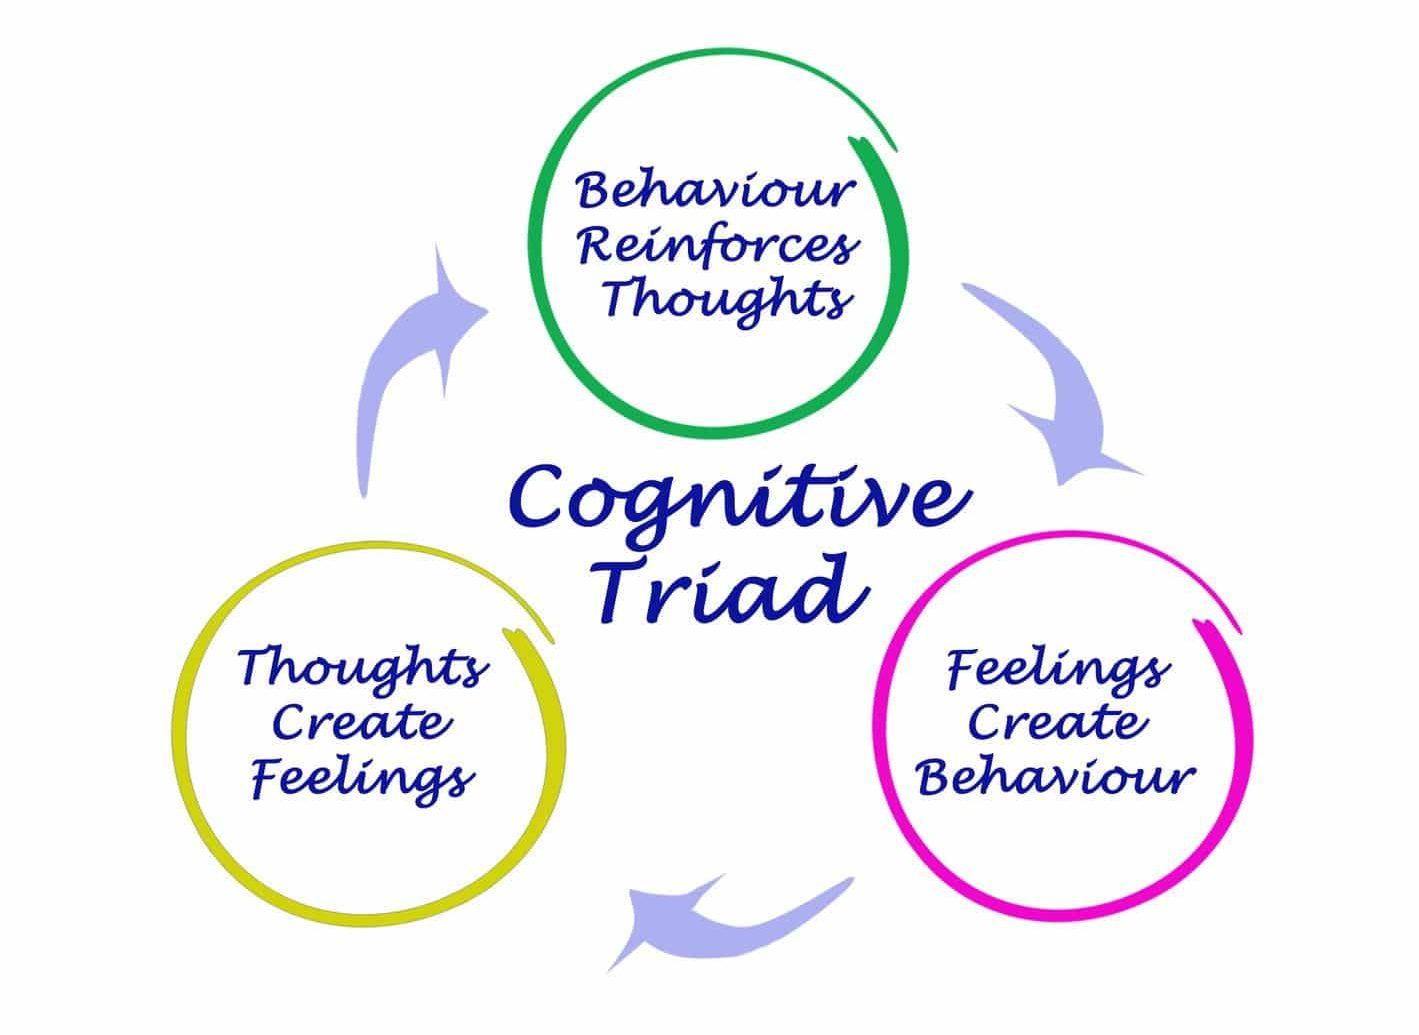 Caroline Bronte Counselor - Cognitive Triad